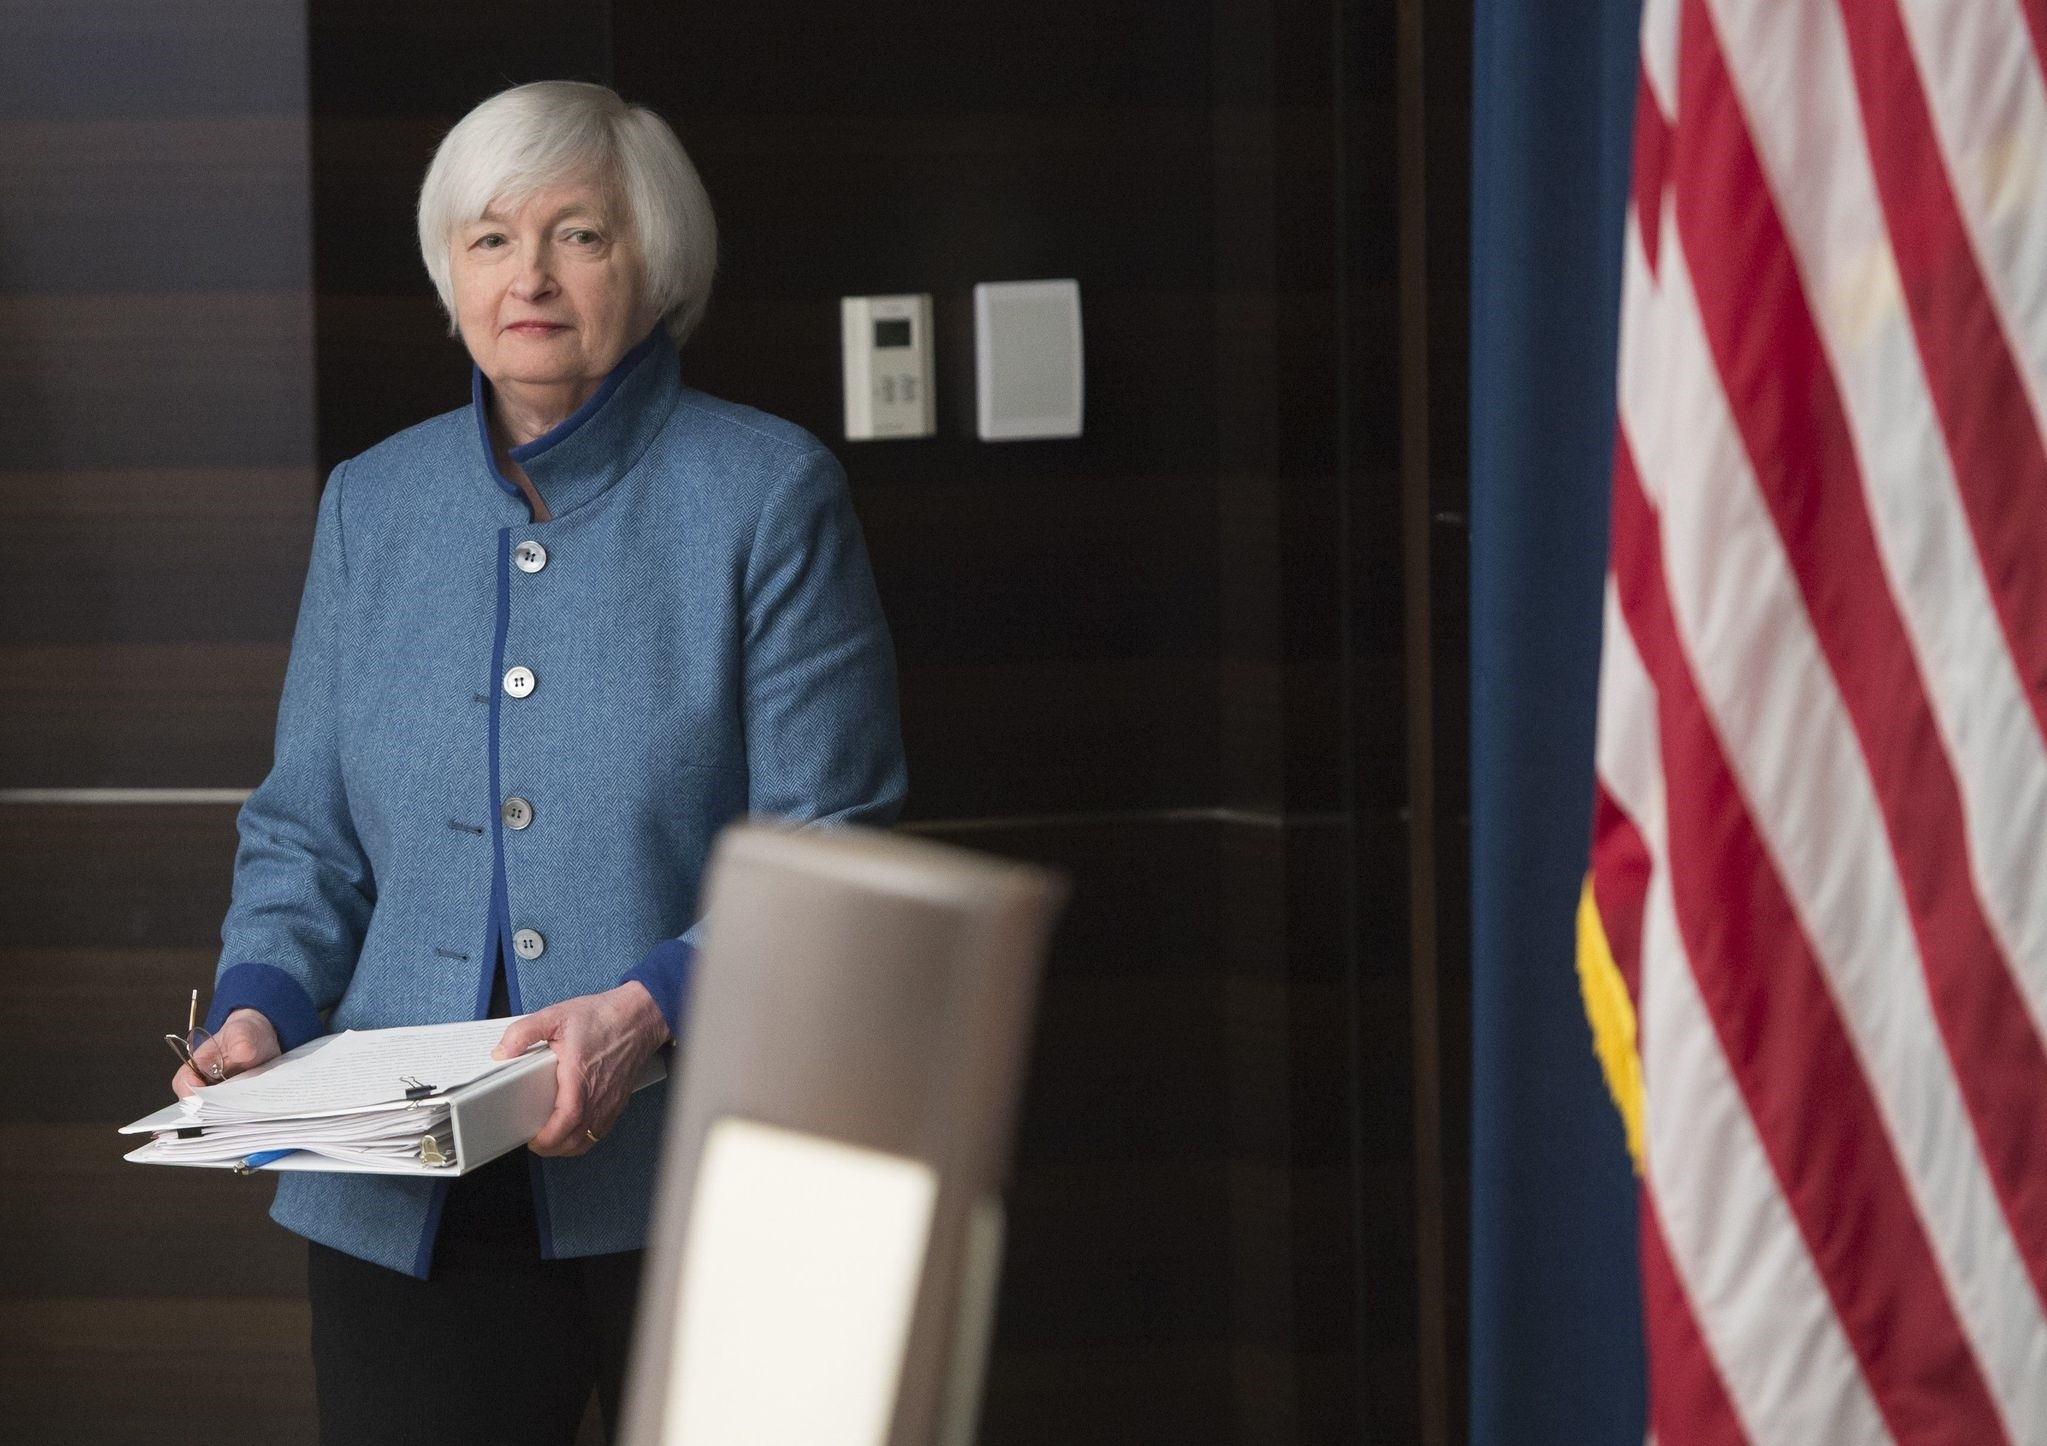 Federal Reserve Chair Janet Yellen arrives to speak during a press conference following the announcement that the Fed will raise interest rates. (AFP Photo)